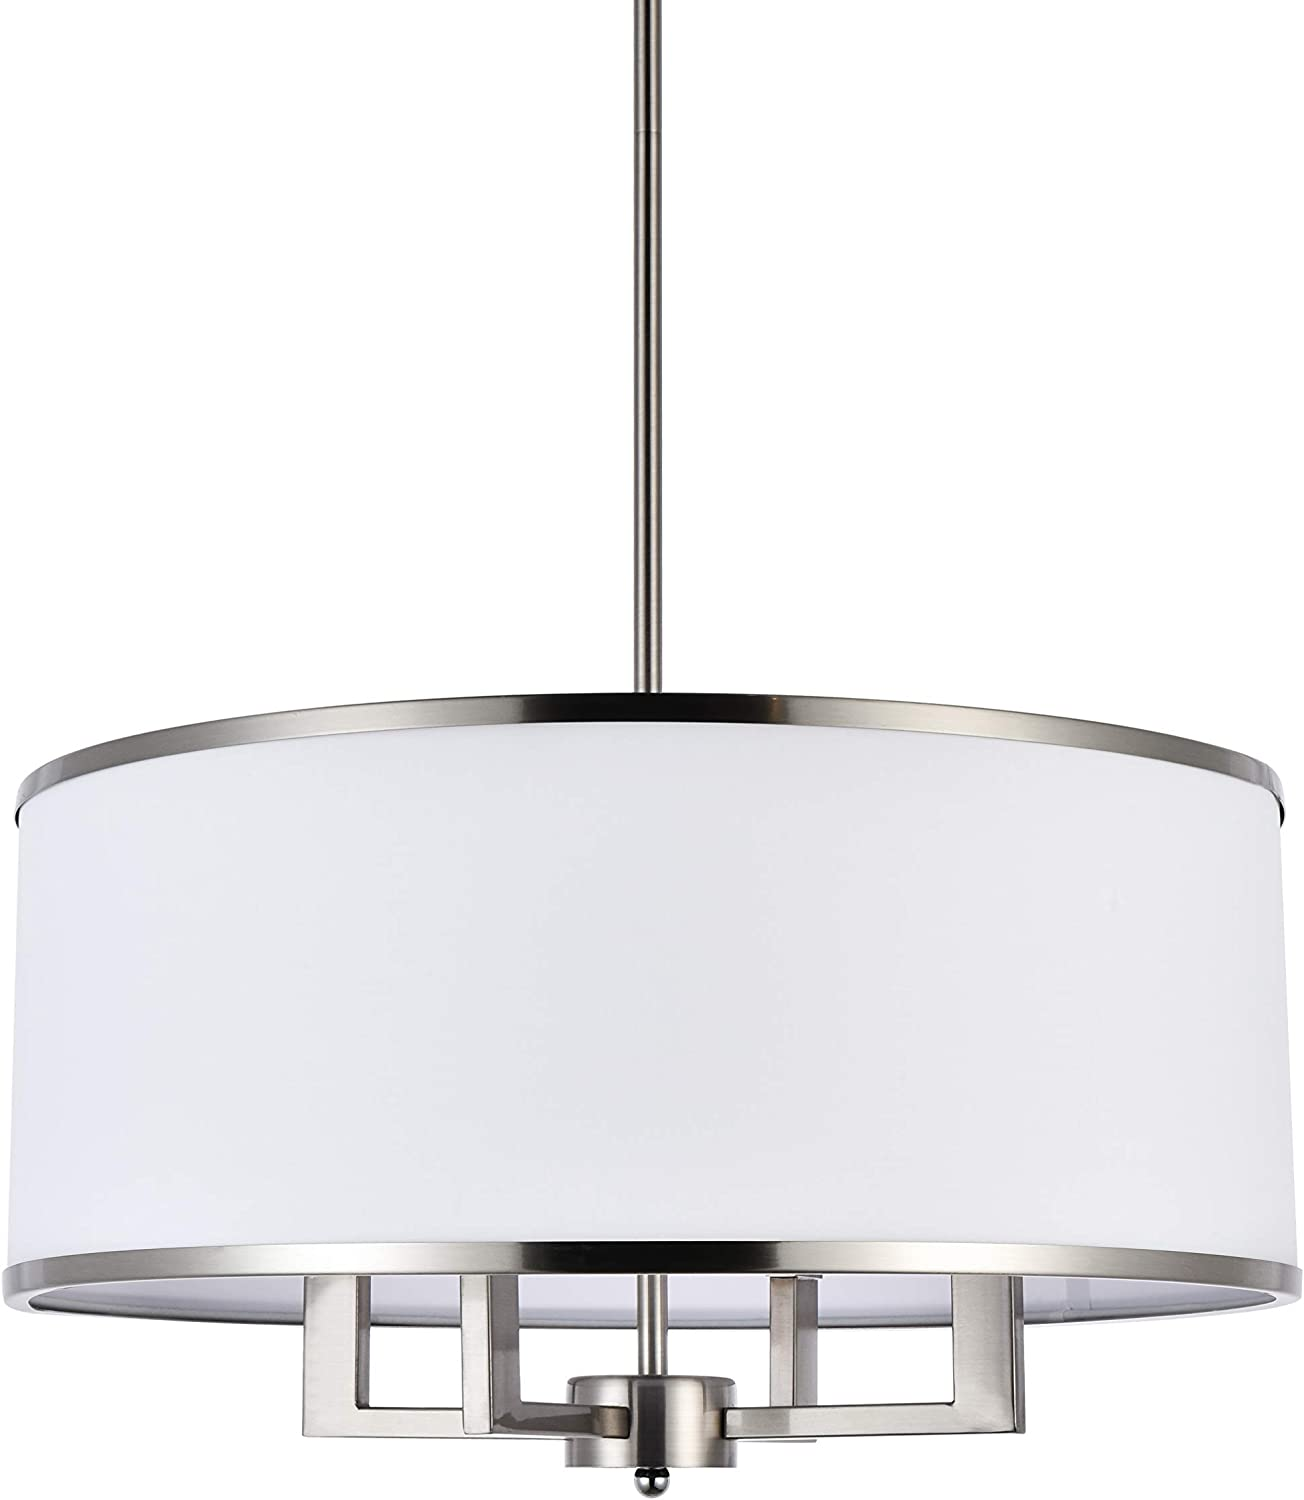 A1A9 Classic 4-Light Drum Pendant Lighting Fixture, 20'' White Fabric Shade, Vertical Rod Semi Flush Mount Ceiling Lights, Brushed Nickel Chandelier for Foyer Entryway Hallway Dining Room